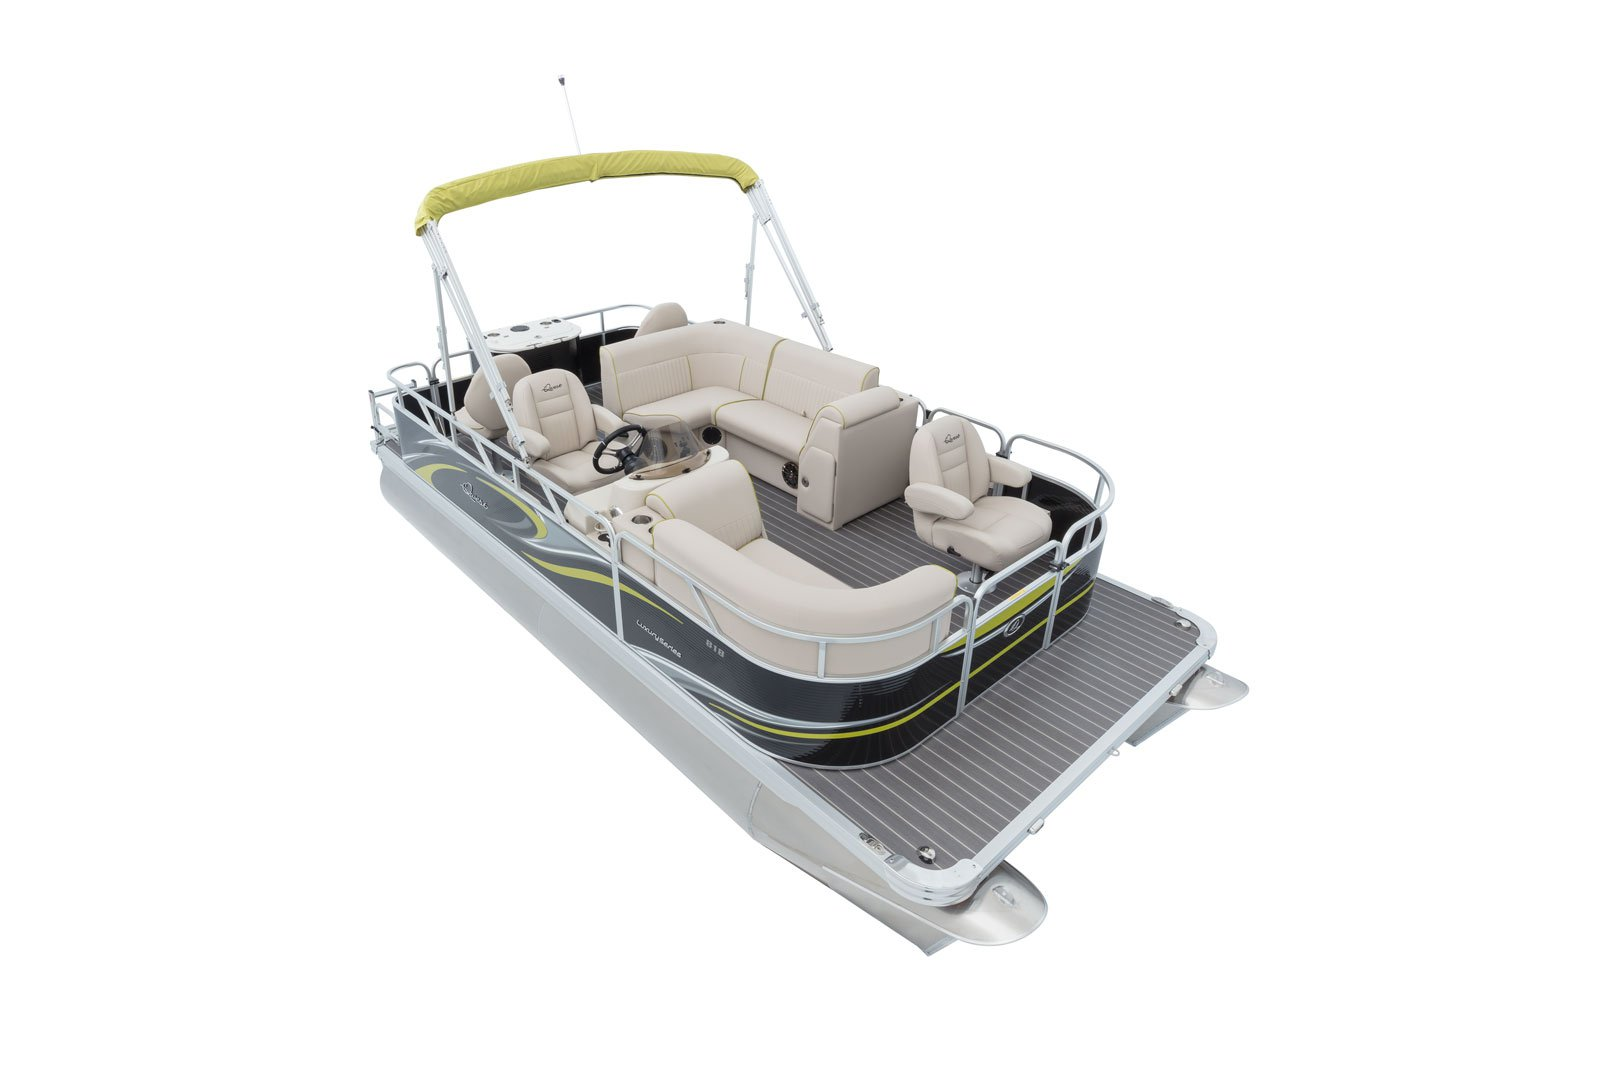 Apex Marine Archives Pontoon Boats Switch Panel And Wiring Harness Qwest Ls A High End Luxury Boat The Offers Elegant Styling Fine Detailing With Exclusive Amenities Promises To Be Ultimate